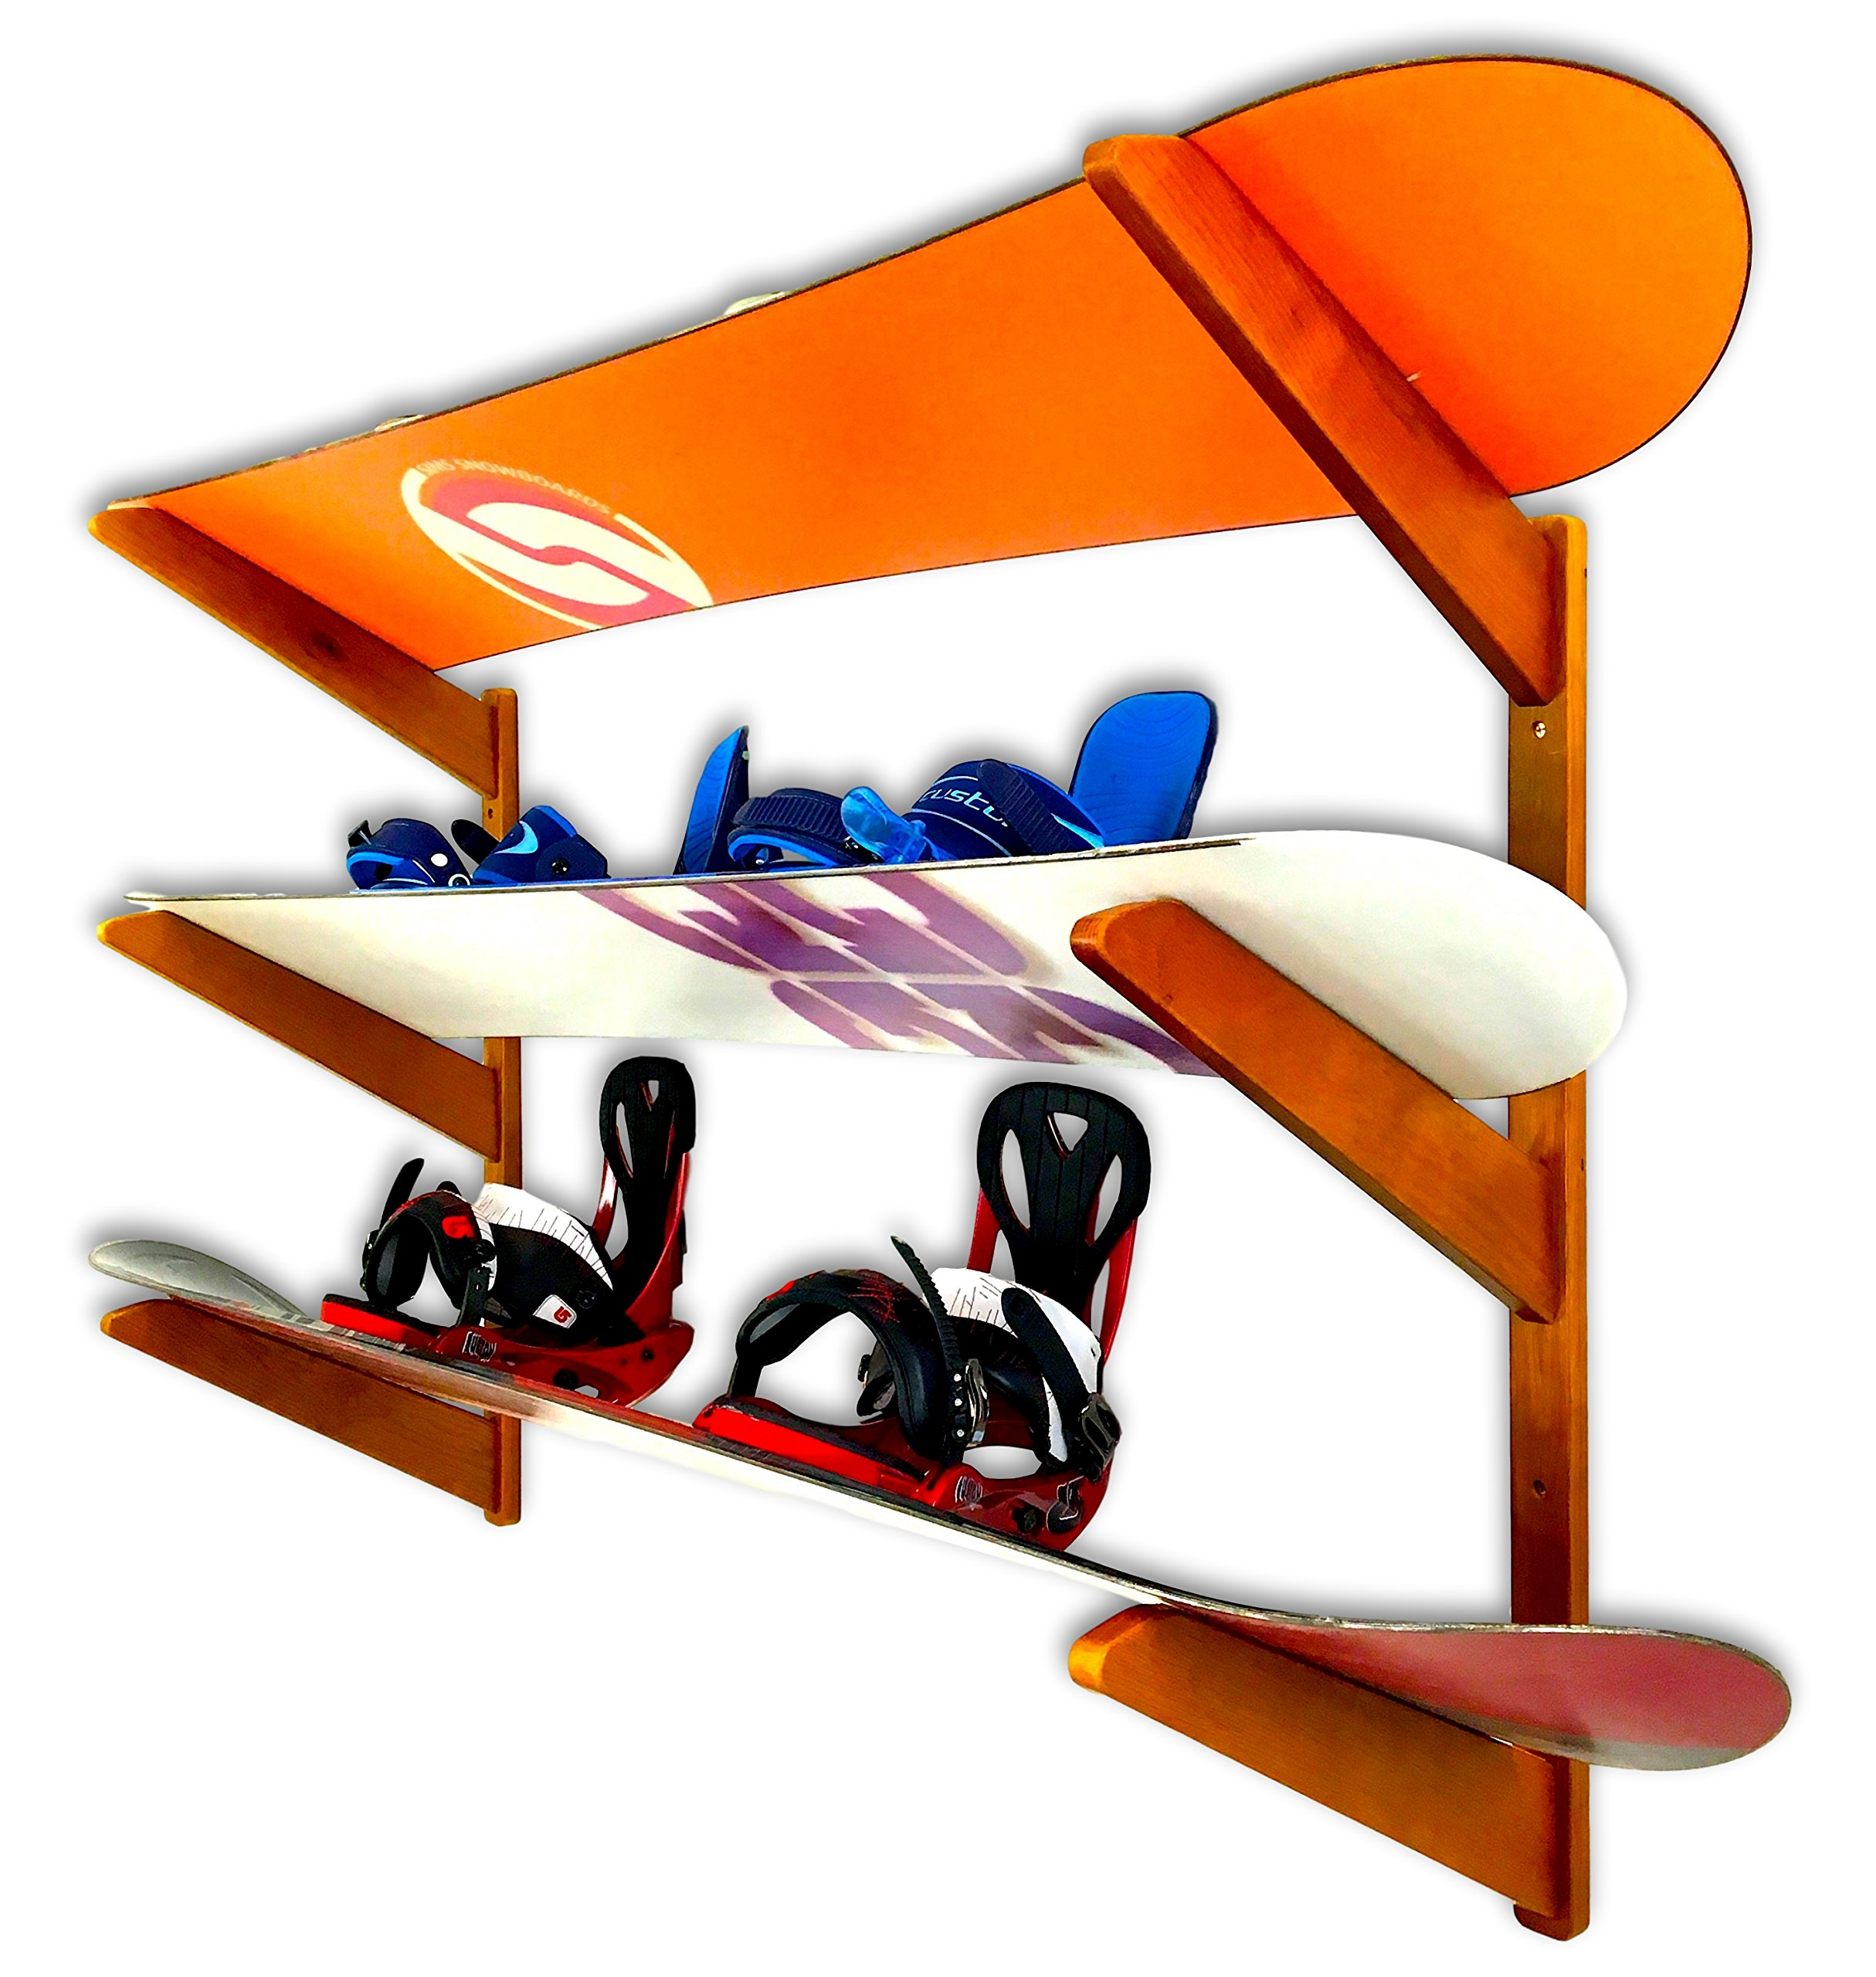 Timber Snowboard Wall Rack - Holds 3 Snowboards - Cherry Wood Home & Garage Storage Mount System by StoreYourBoard